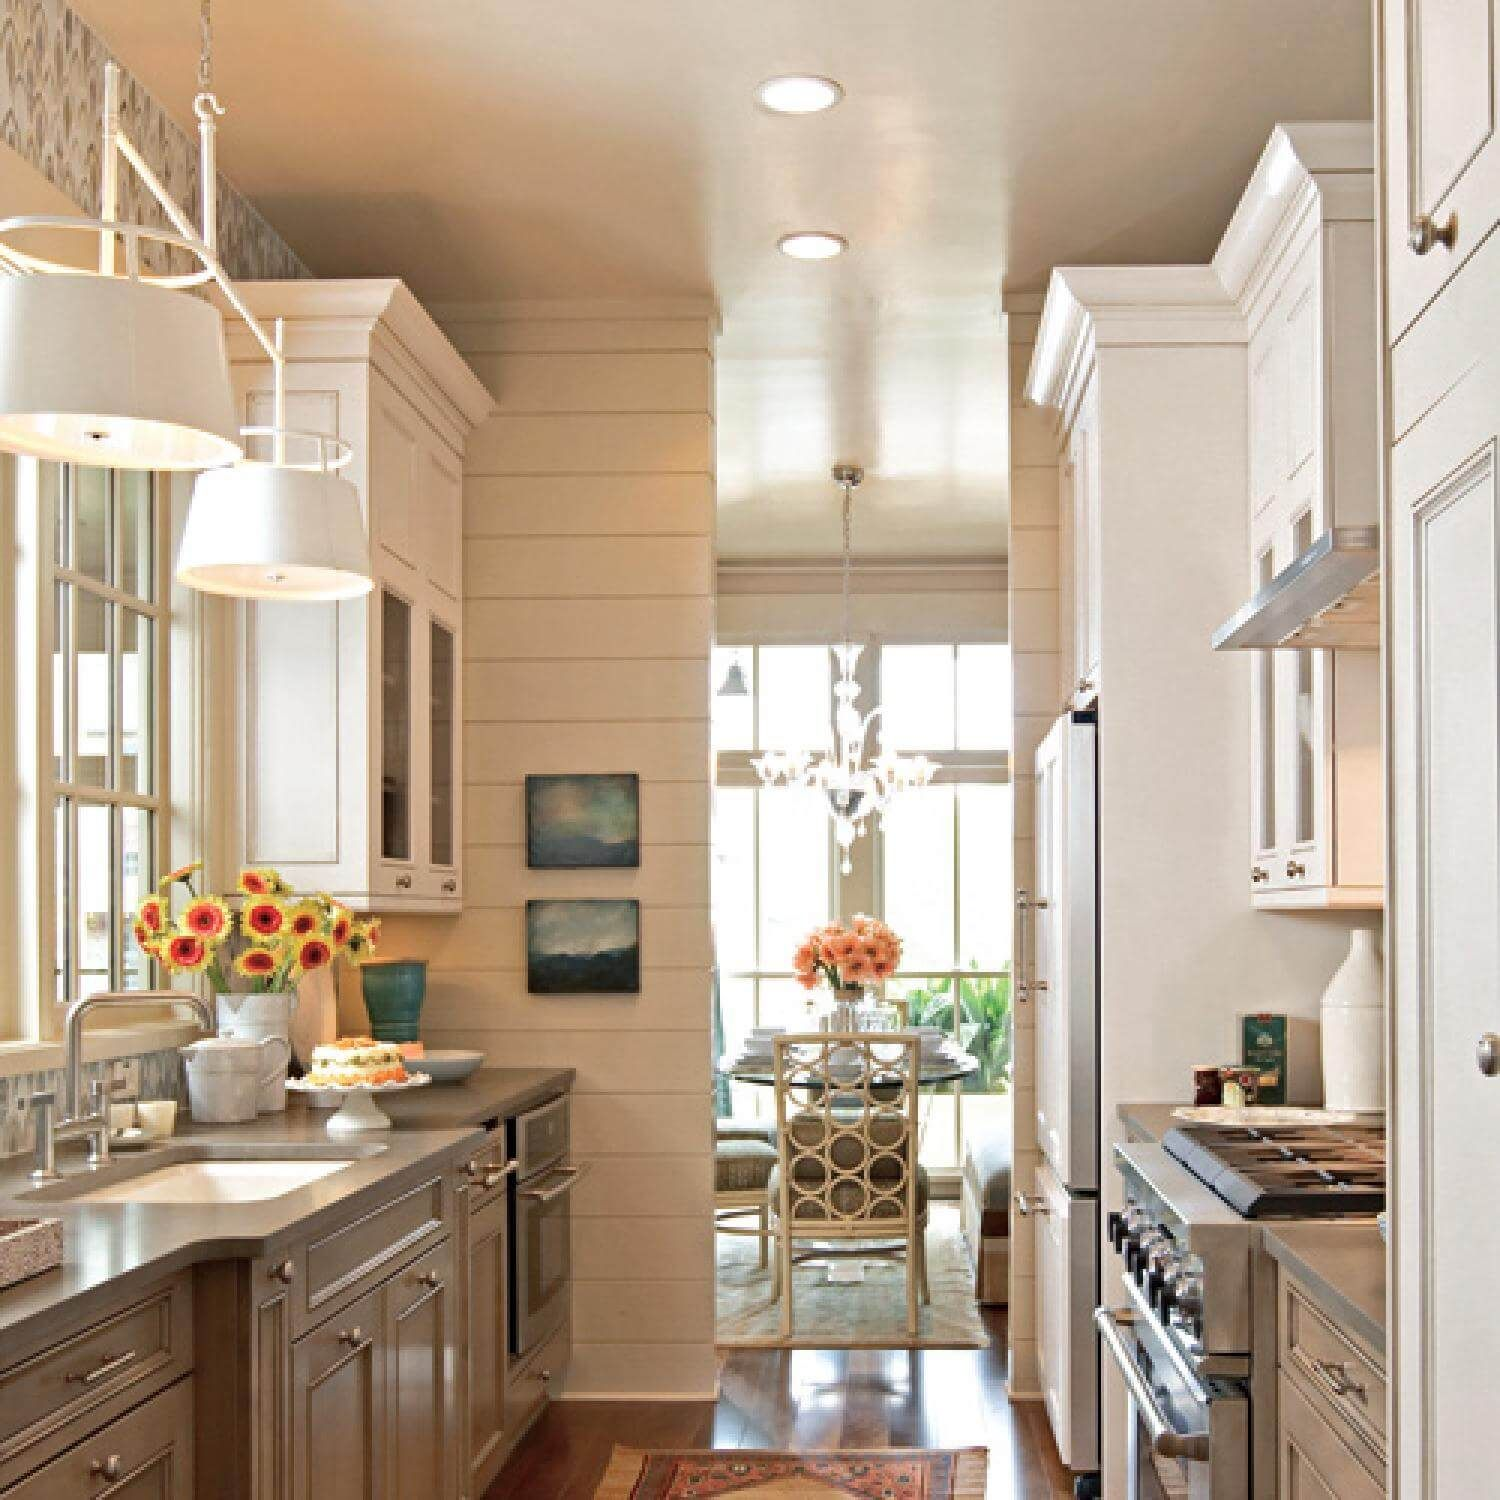 10 Small Kitchen Lighting Ideas 2020 (as Upper Decoration